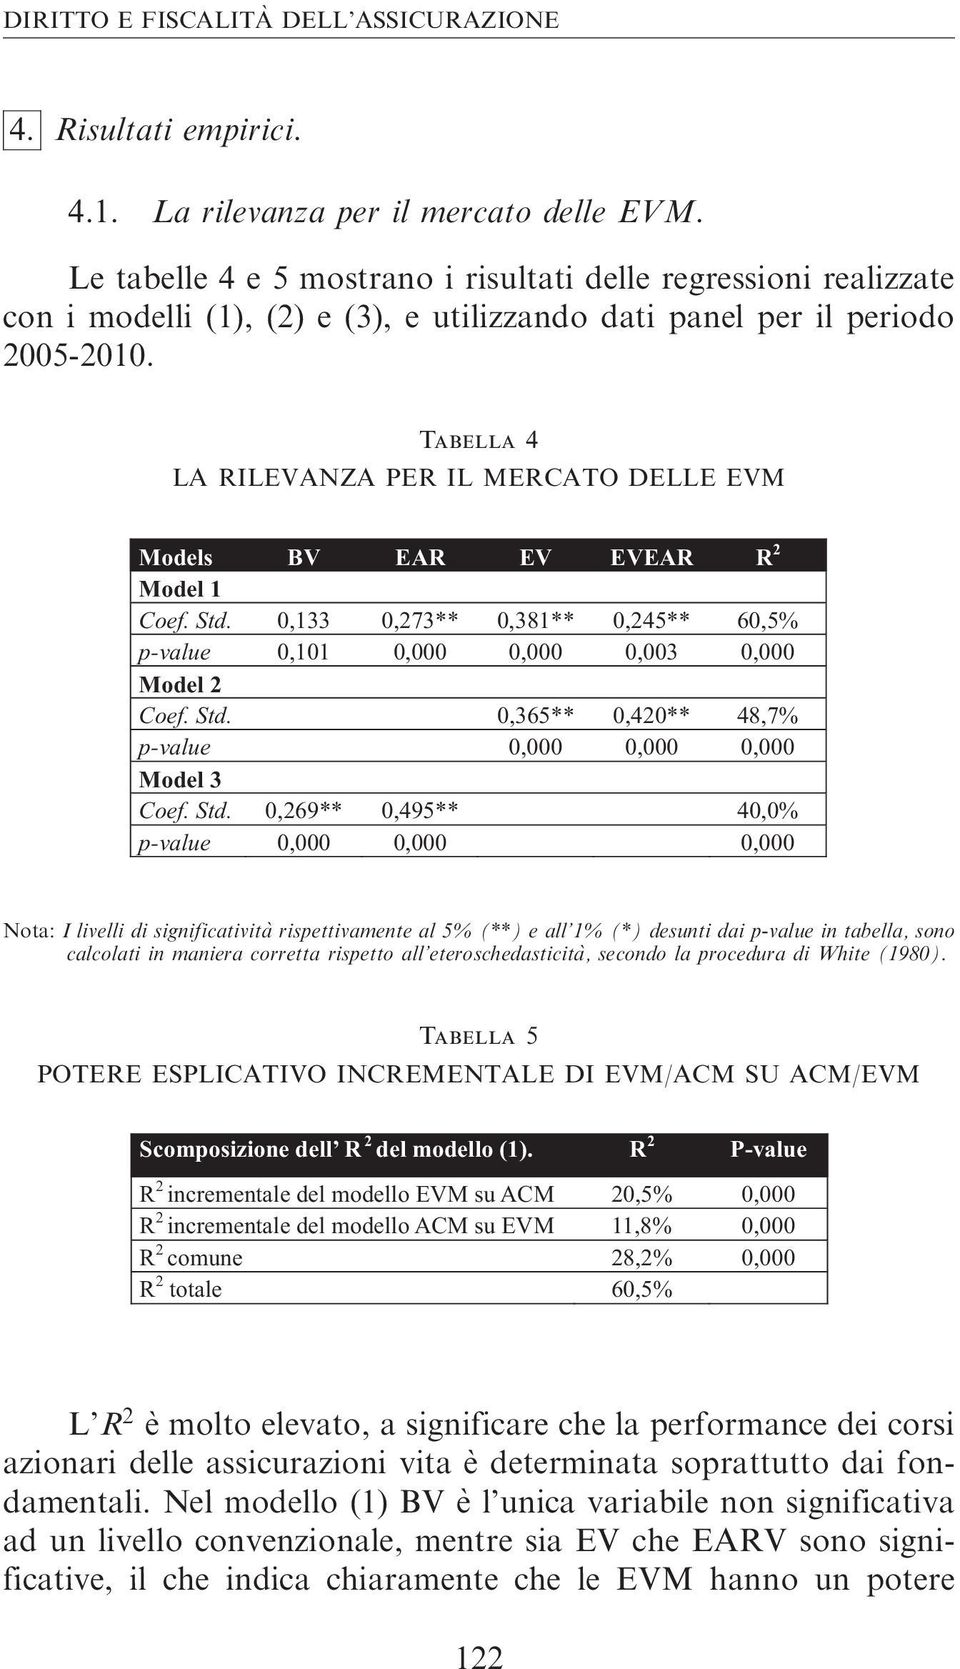 Tabella 4 LA RILEVANZA PER IL MERCATO DELLE EVM Models BV EAR EV EVEAR R 2 Model 1 Coef. Std. 0,133 0,273** 0,381** 0,245** 60,5% p-value 0,101 0,000 0,000 0,003 0,000 Model 2 Coef. Std. 0,365** 0,420** 48,7% p-value 0,000 0,000 0,000 Model 3 Coef.